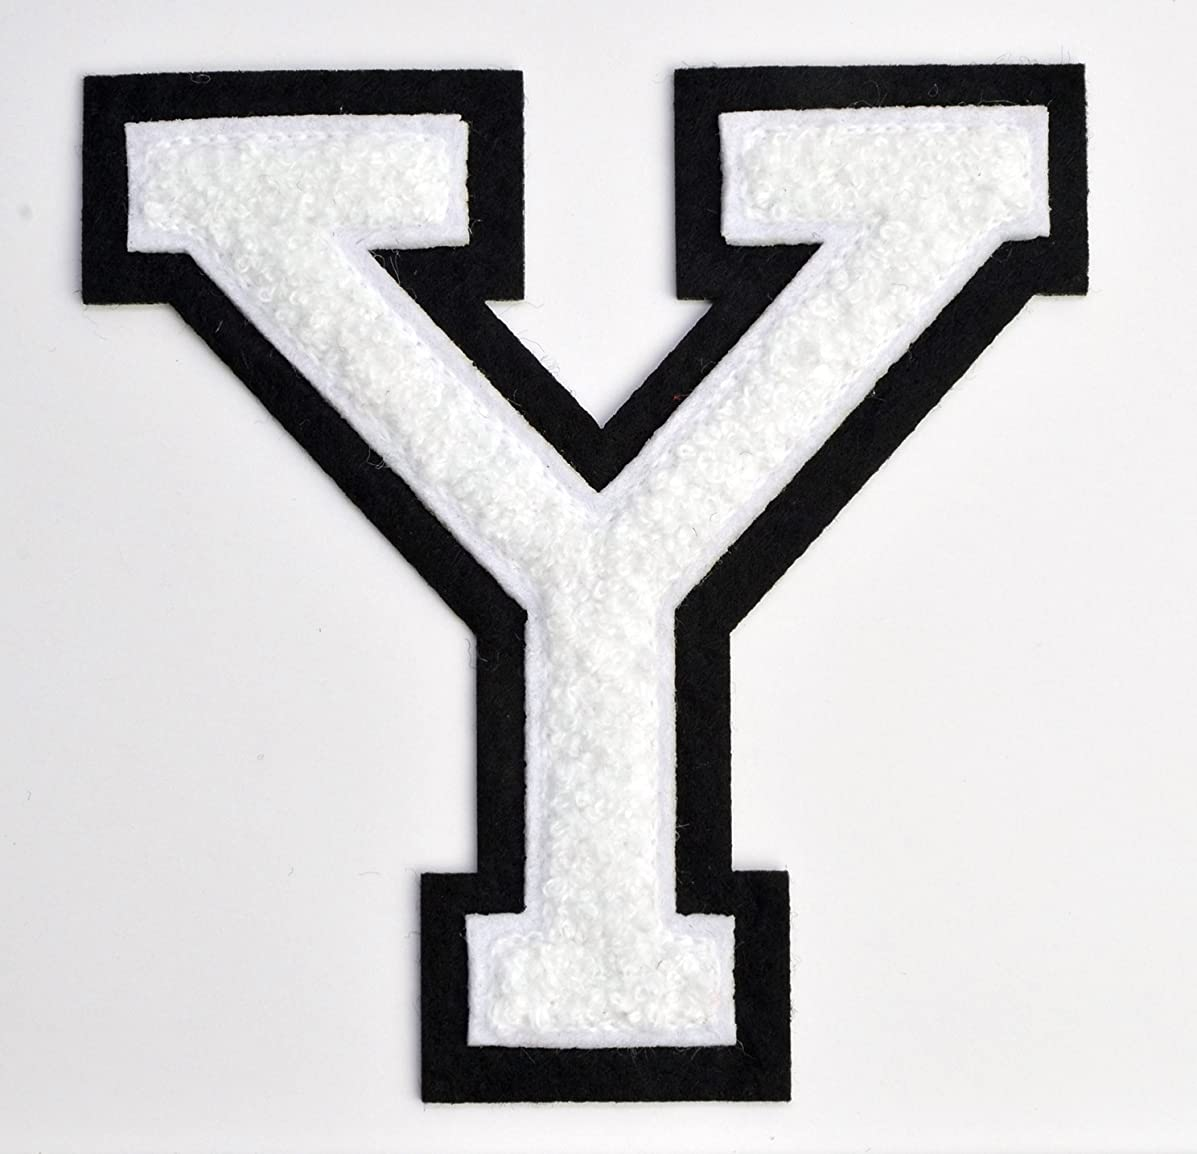 Varsity Letter Patches - White Embroidered Chenille Letterman Patch - 4 1/2 inch Iron-On Letter Initials (White, Letter Y Patch)